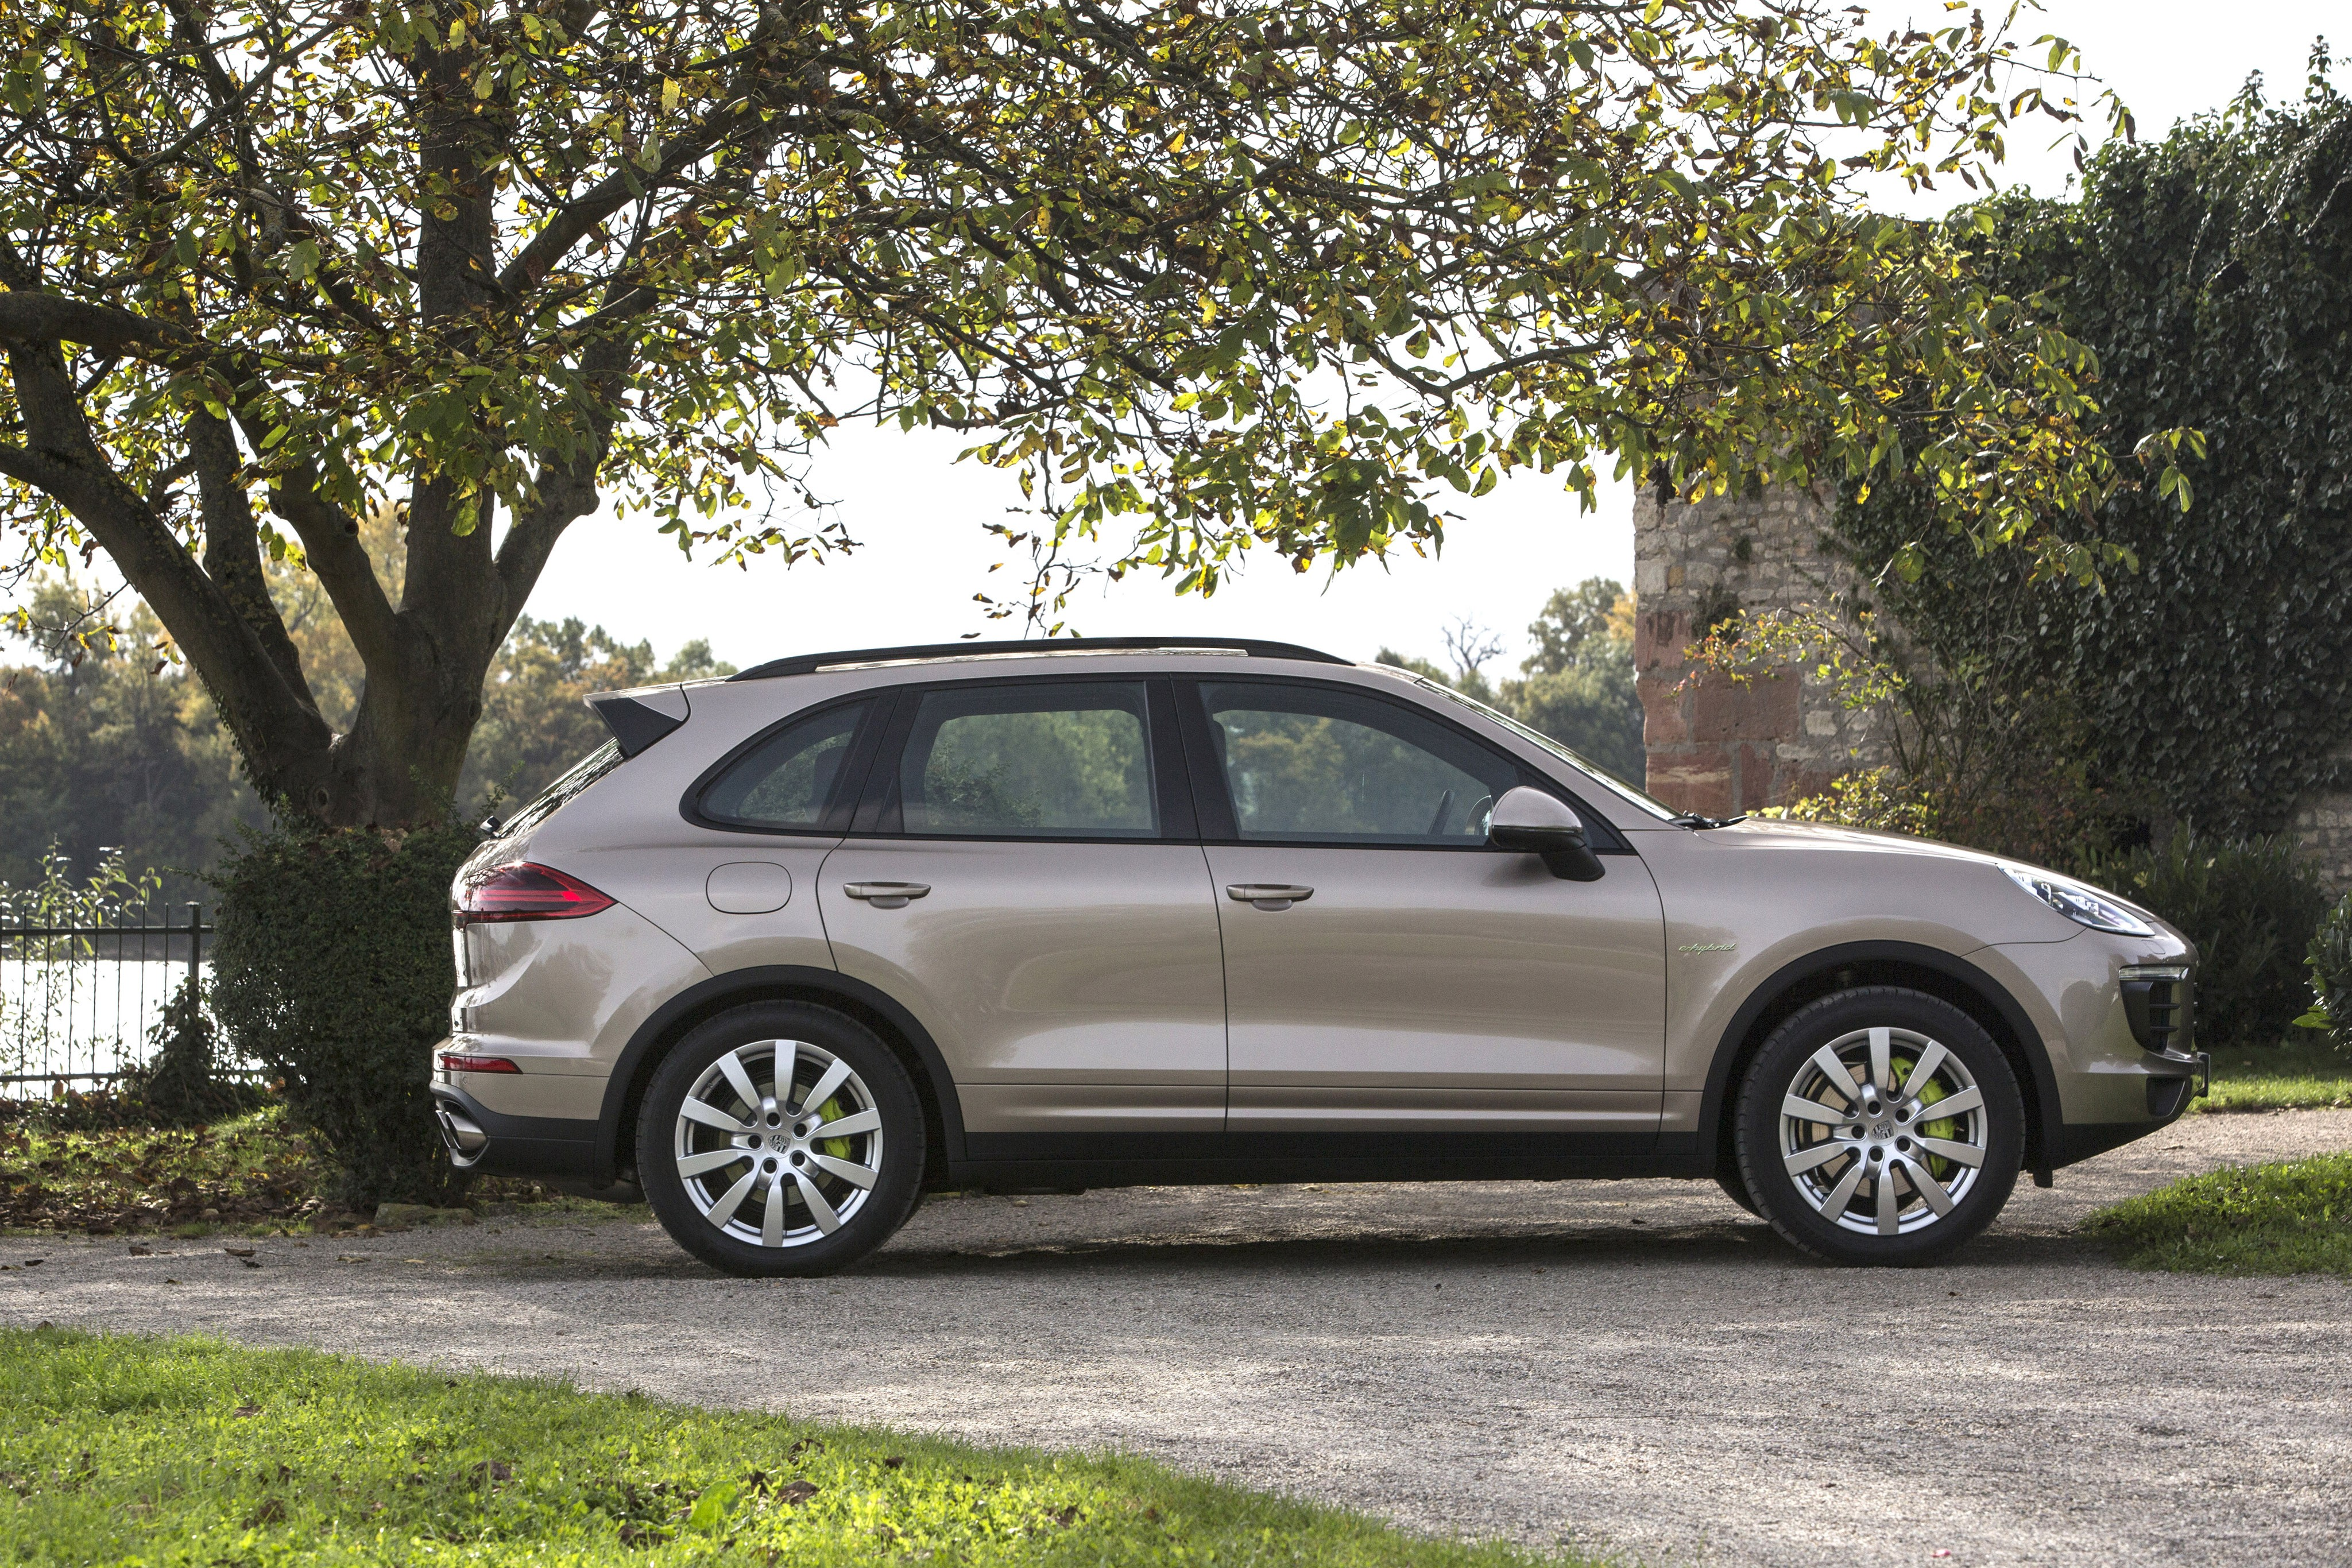 porsche cayenne s e hybrid specs 2014 2015 2016 2017. Black Bedroom Furniture Sets. Home Design Ideas